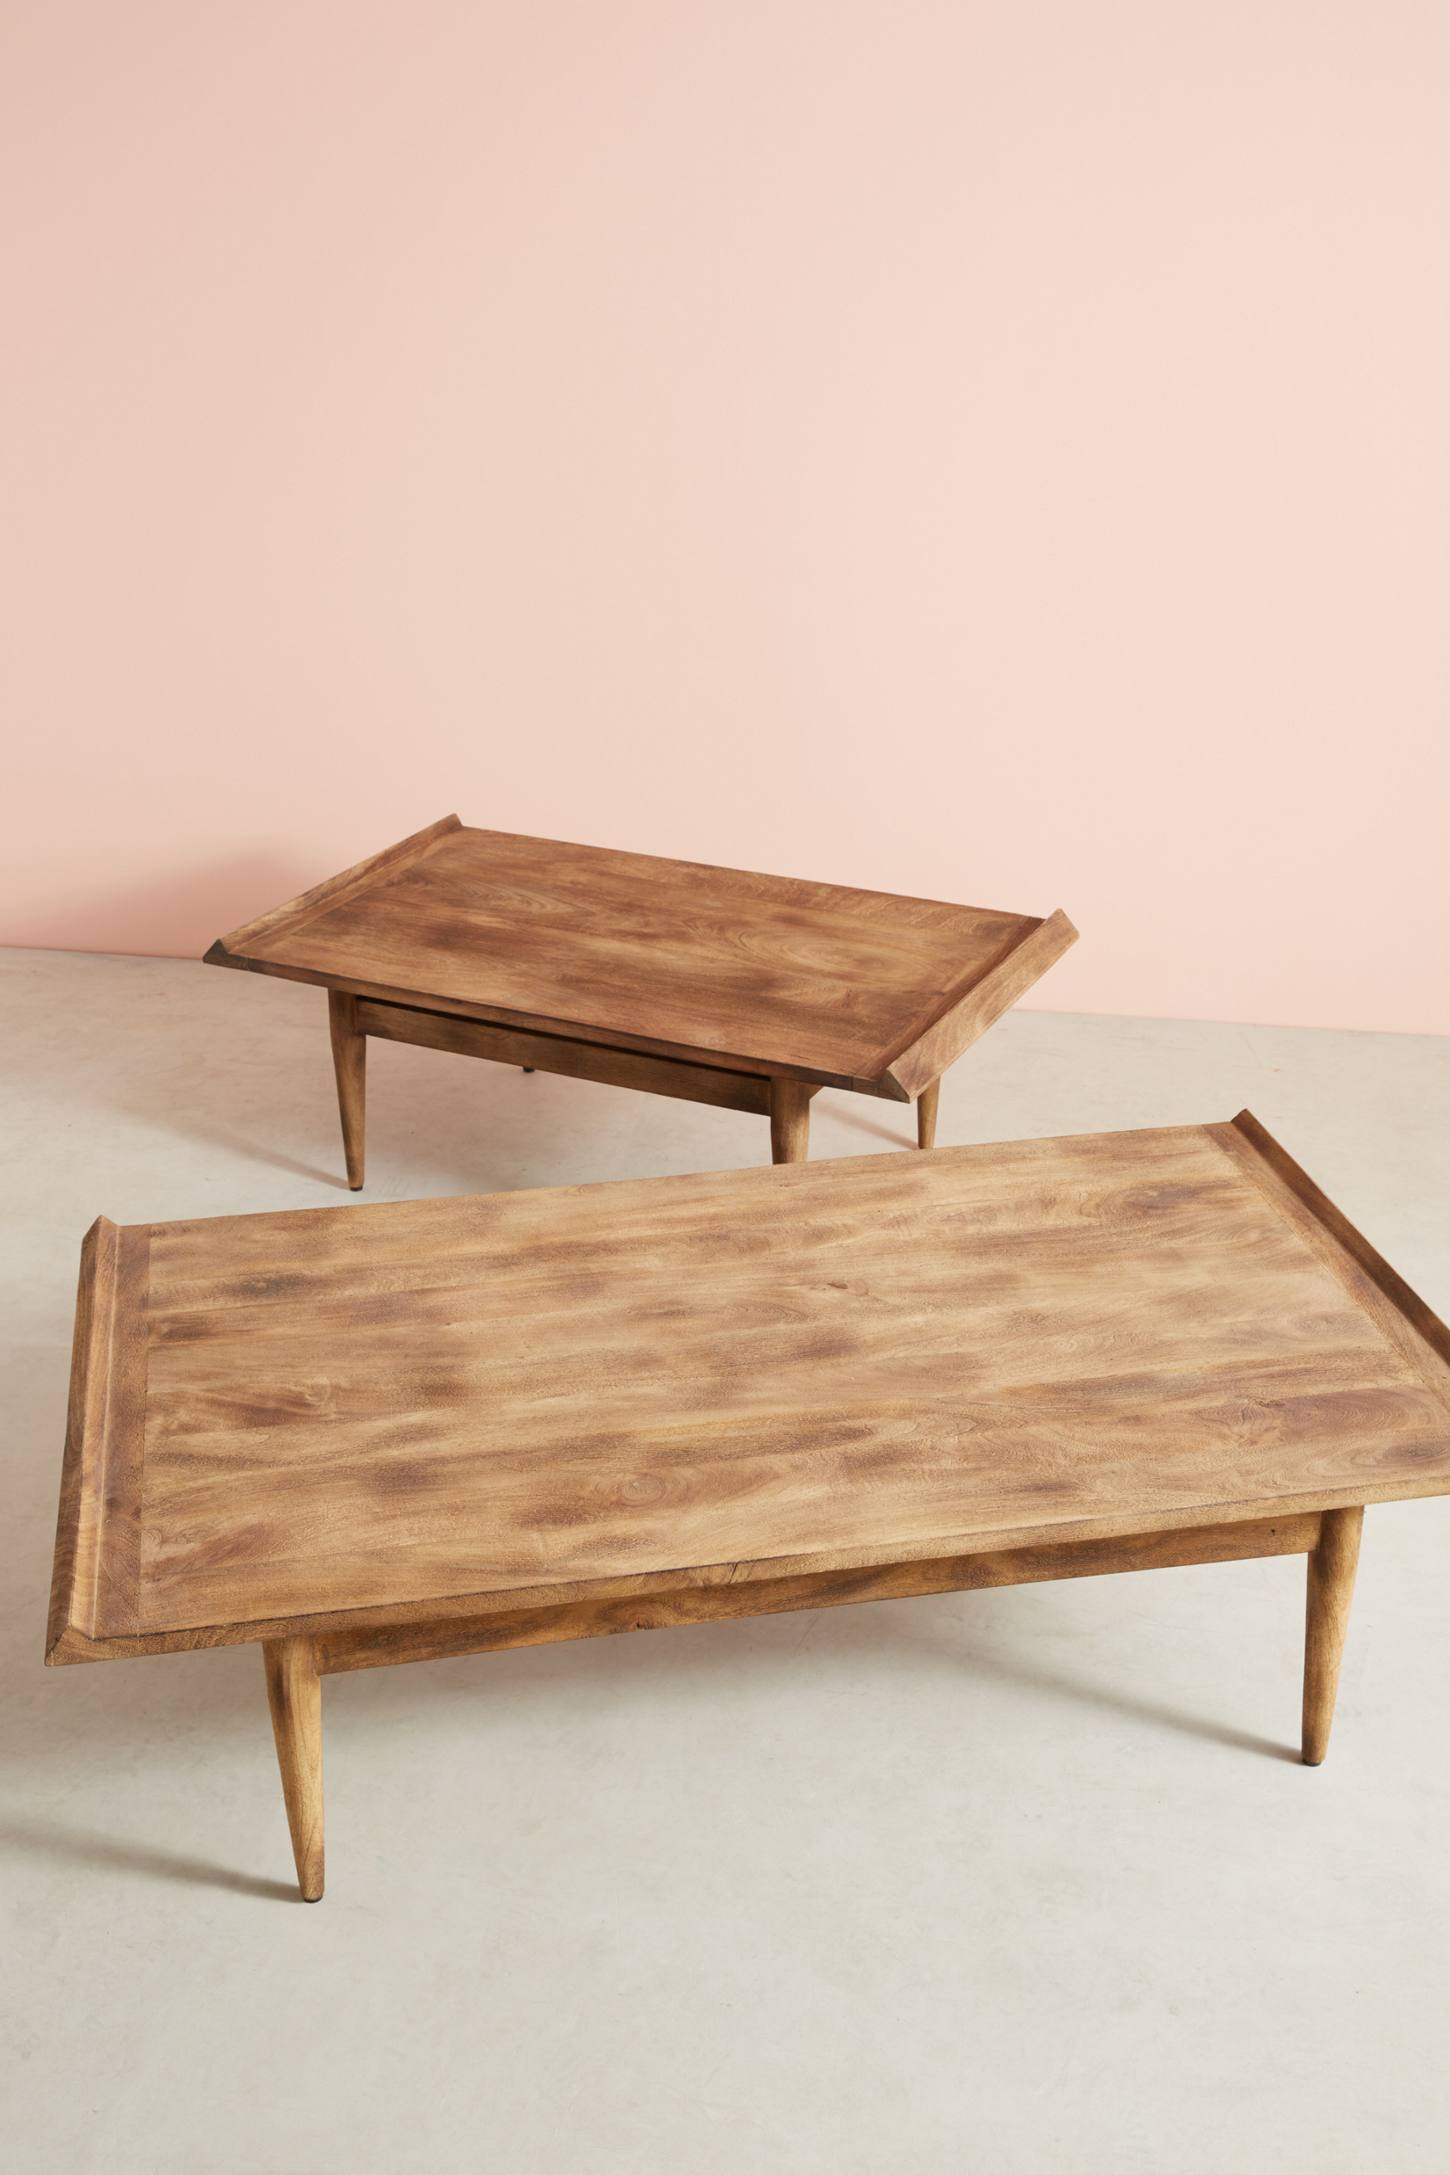 Slide View: 2: Burnished Wood Coffee Table